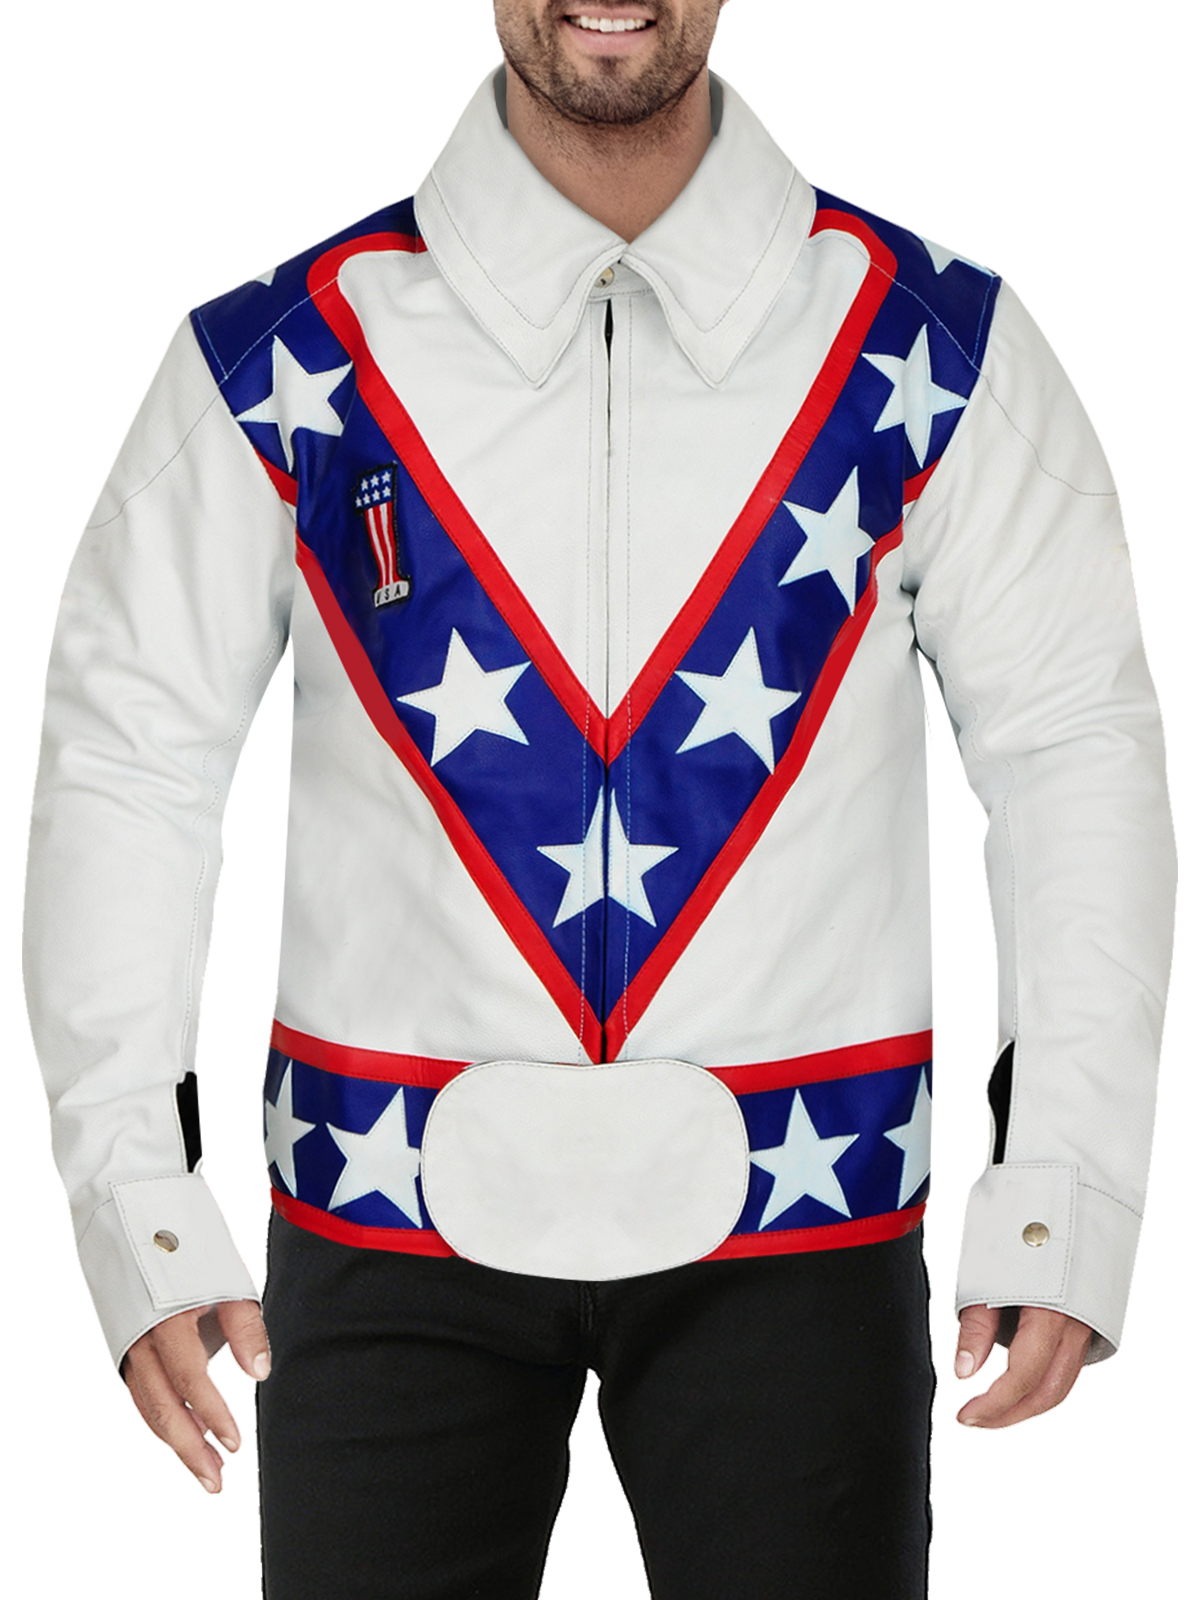 Men's White Real Leather Jacket with Multi-Colored Pattern